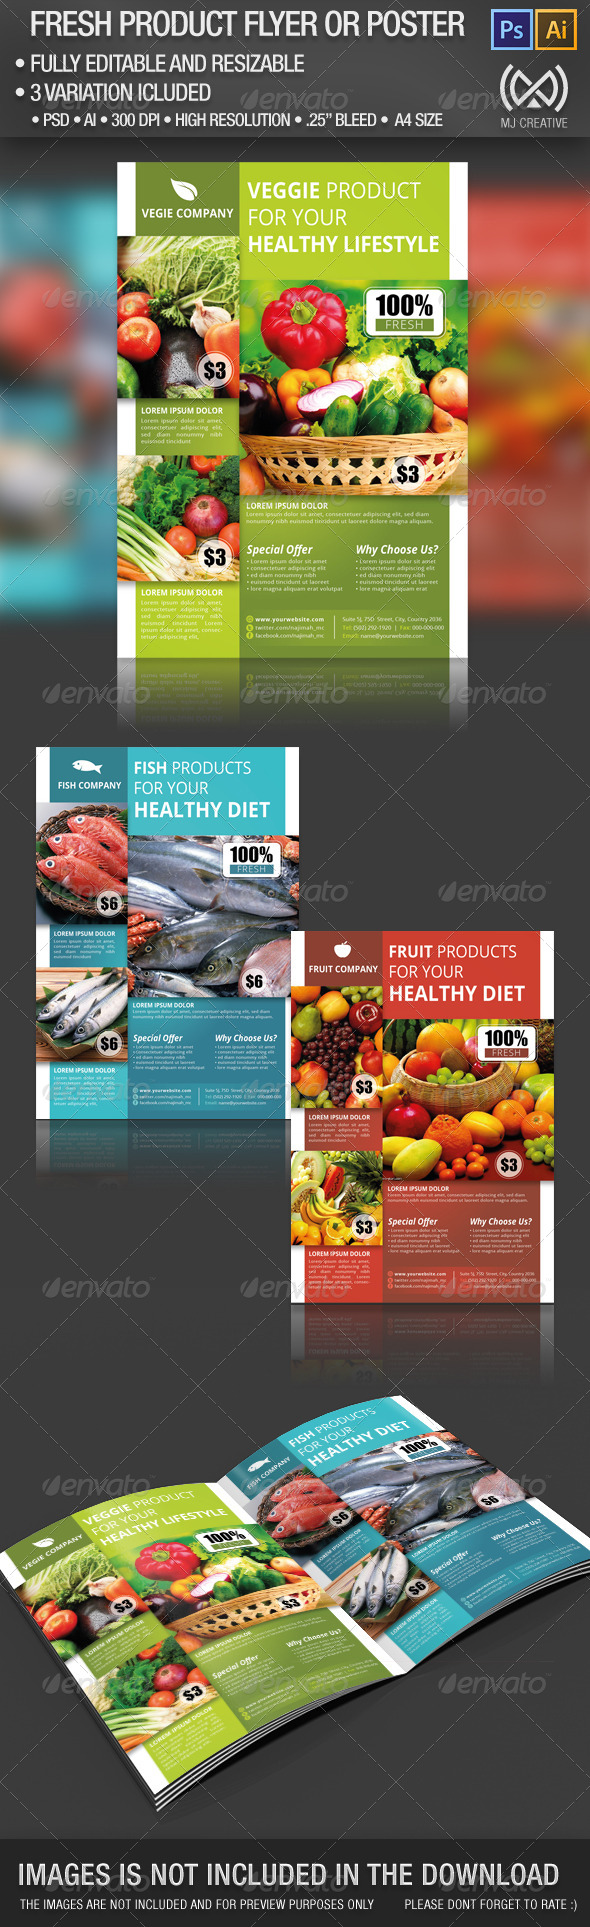 Fresh Product Flyer & Poster - Commerce Flyers